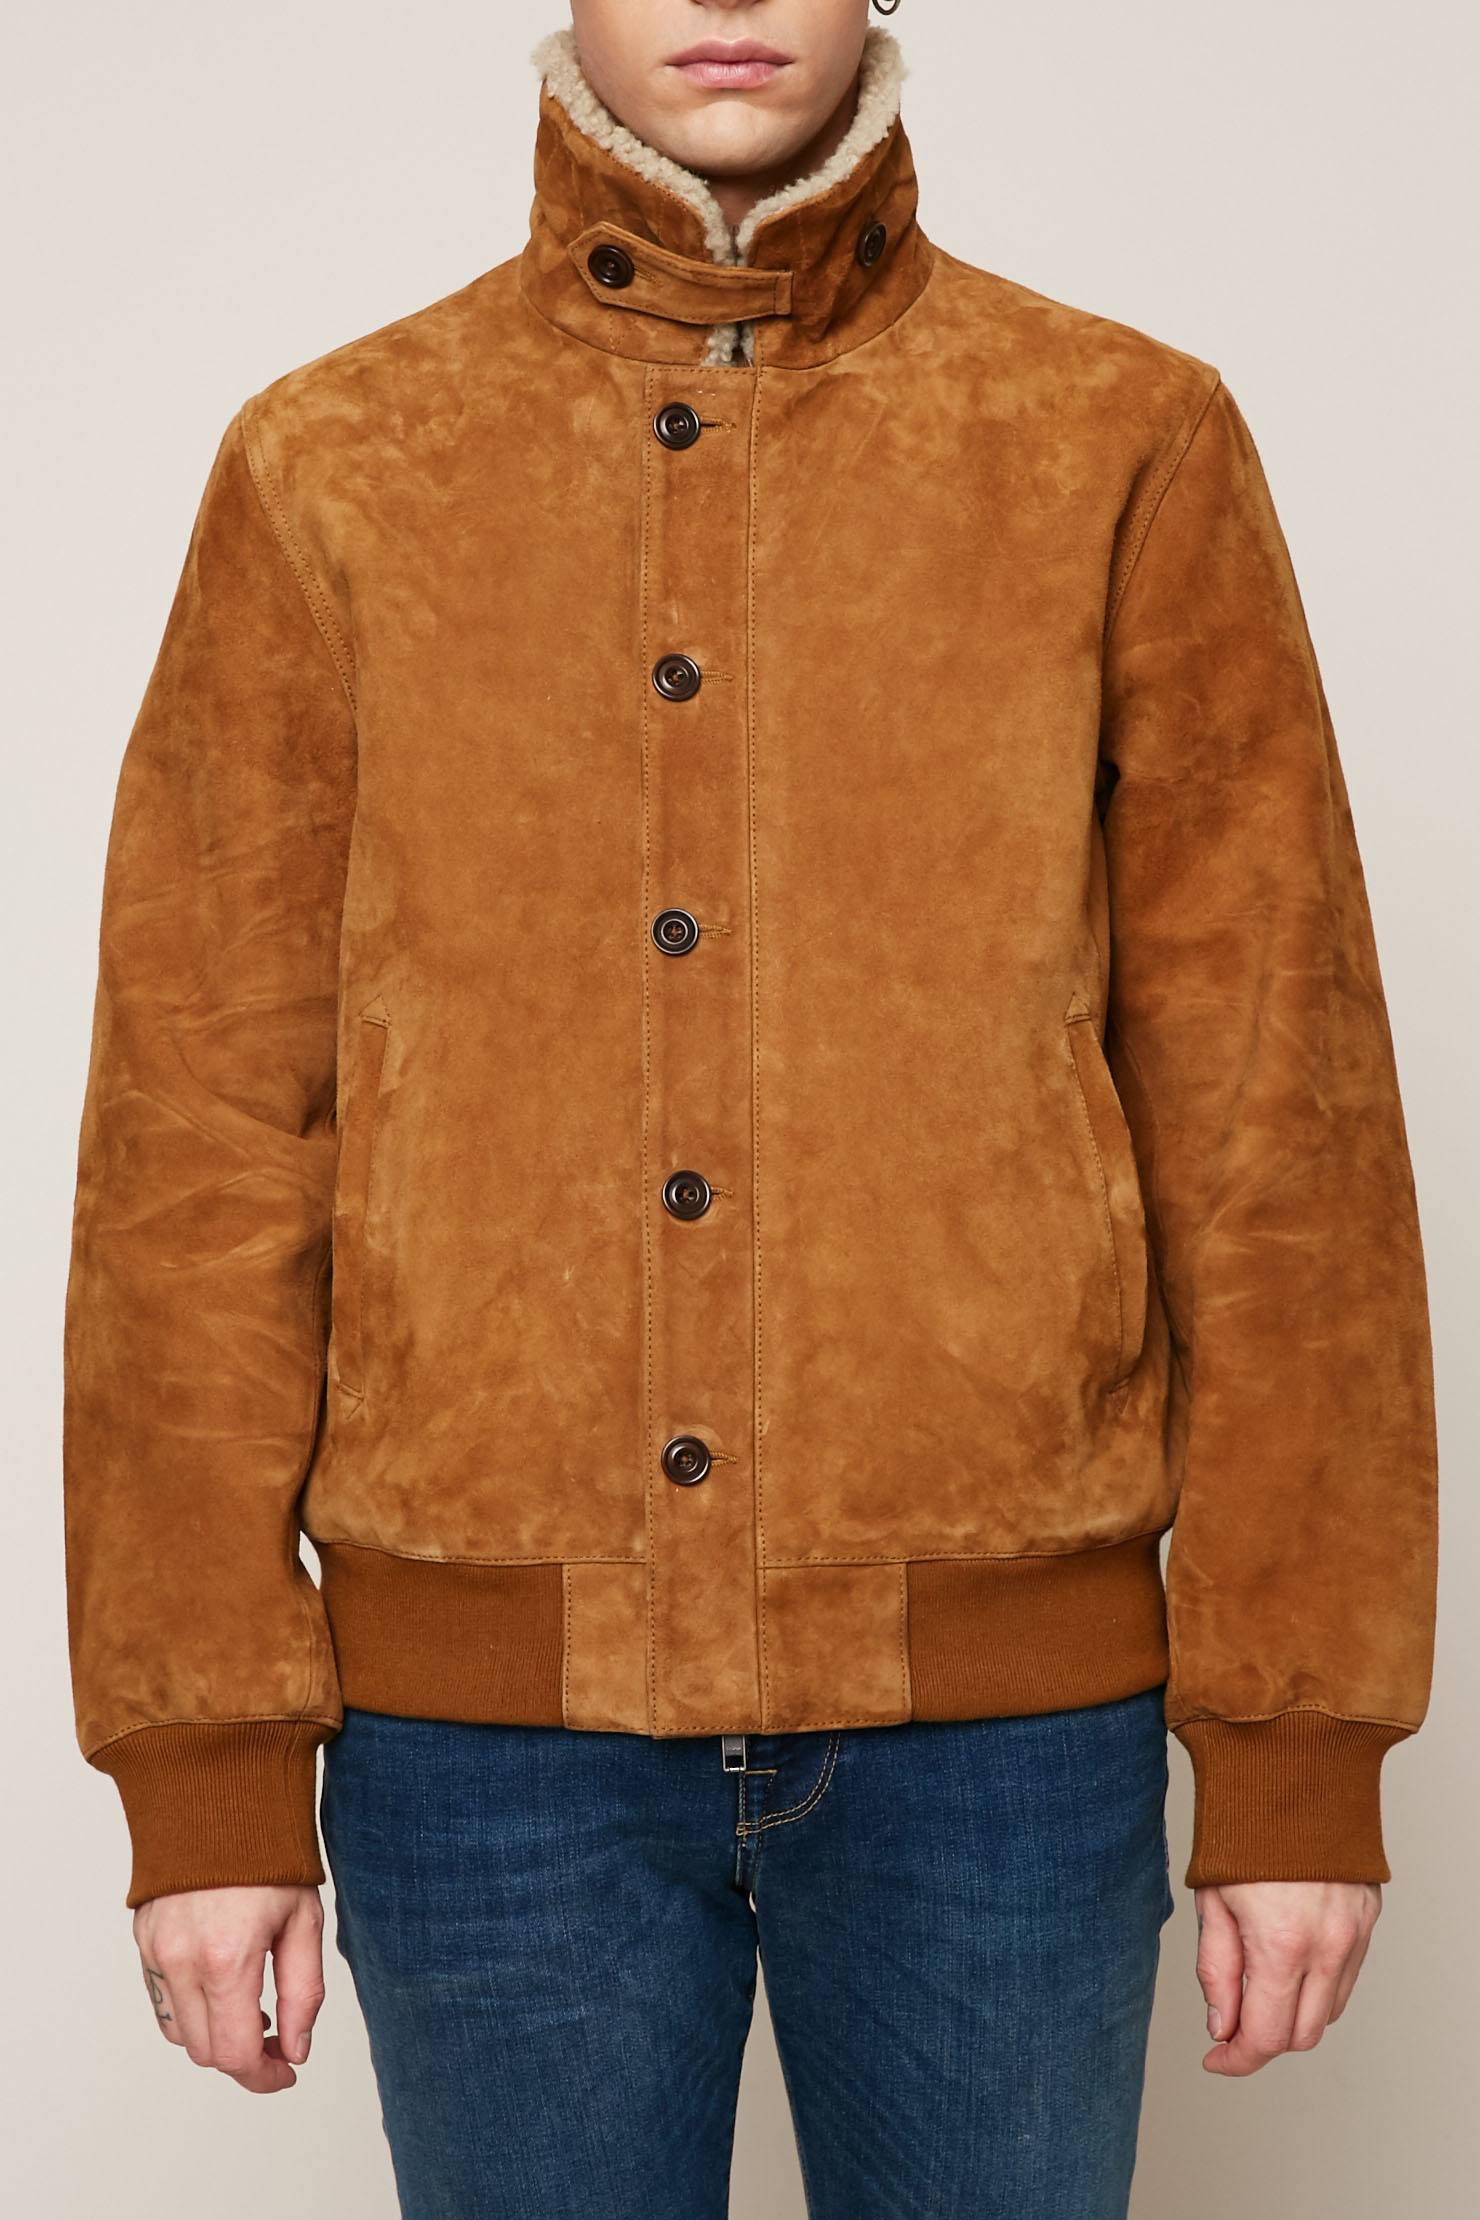 hartford buddhist single men Find hartford men's clothes at shopstyle shop the latest collection of hartford men's clothes from the most popular stores - all in one place.